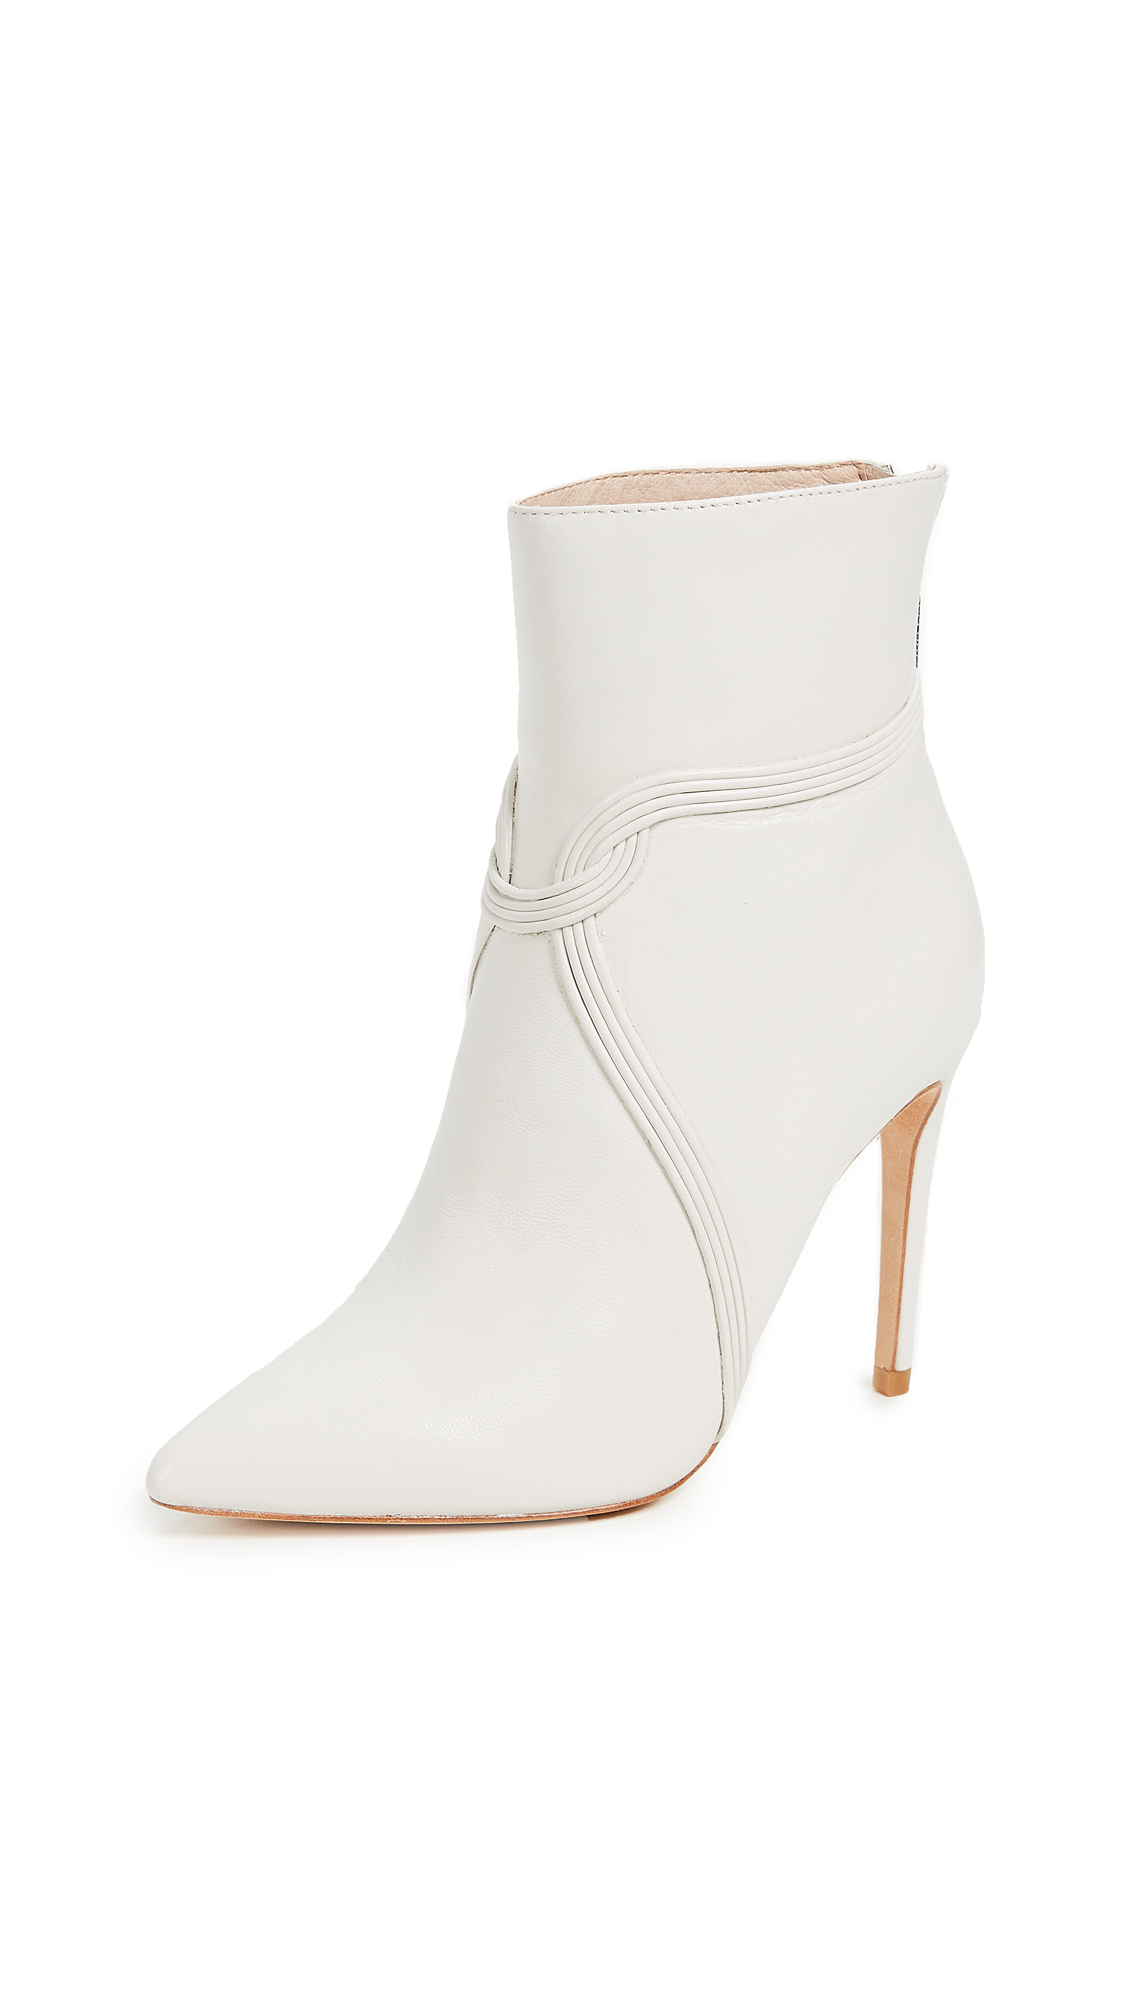 Rachel Zoe Liana Point Toe Booties - Ecru